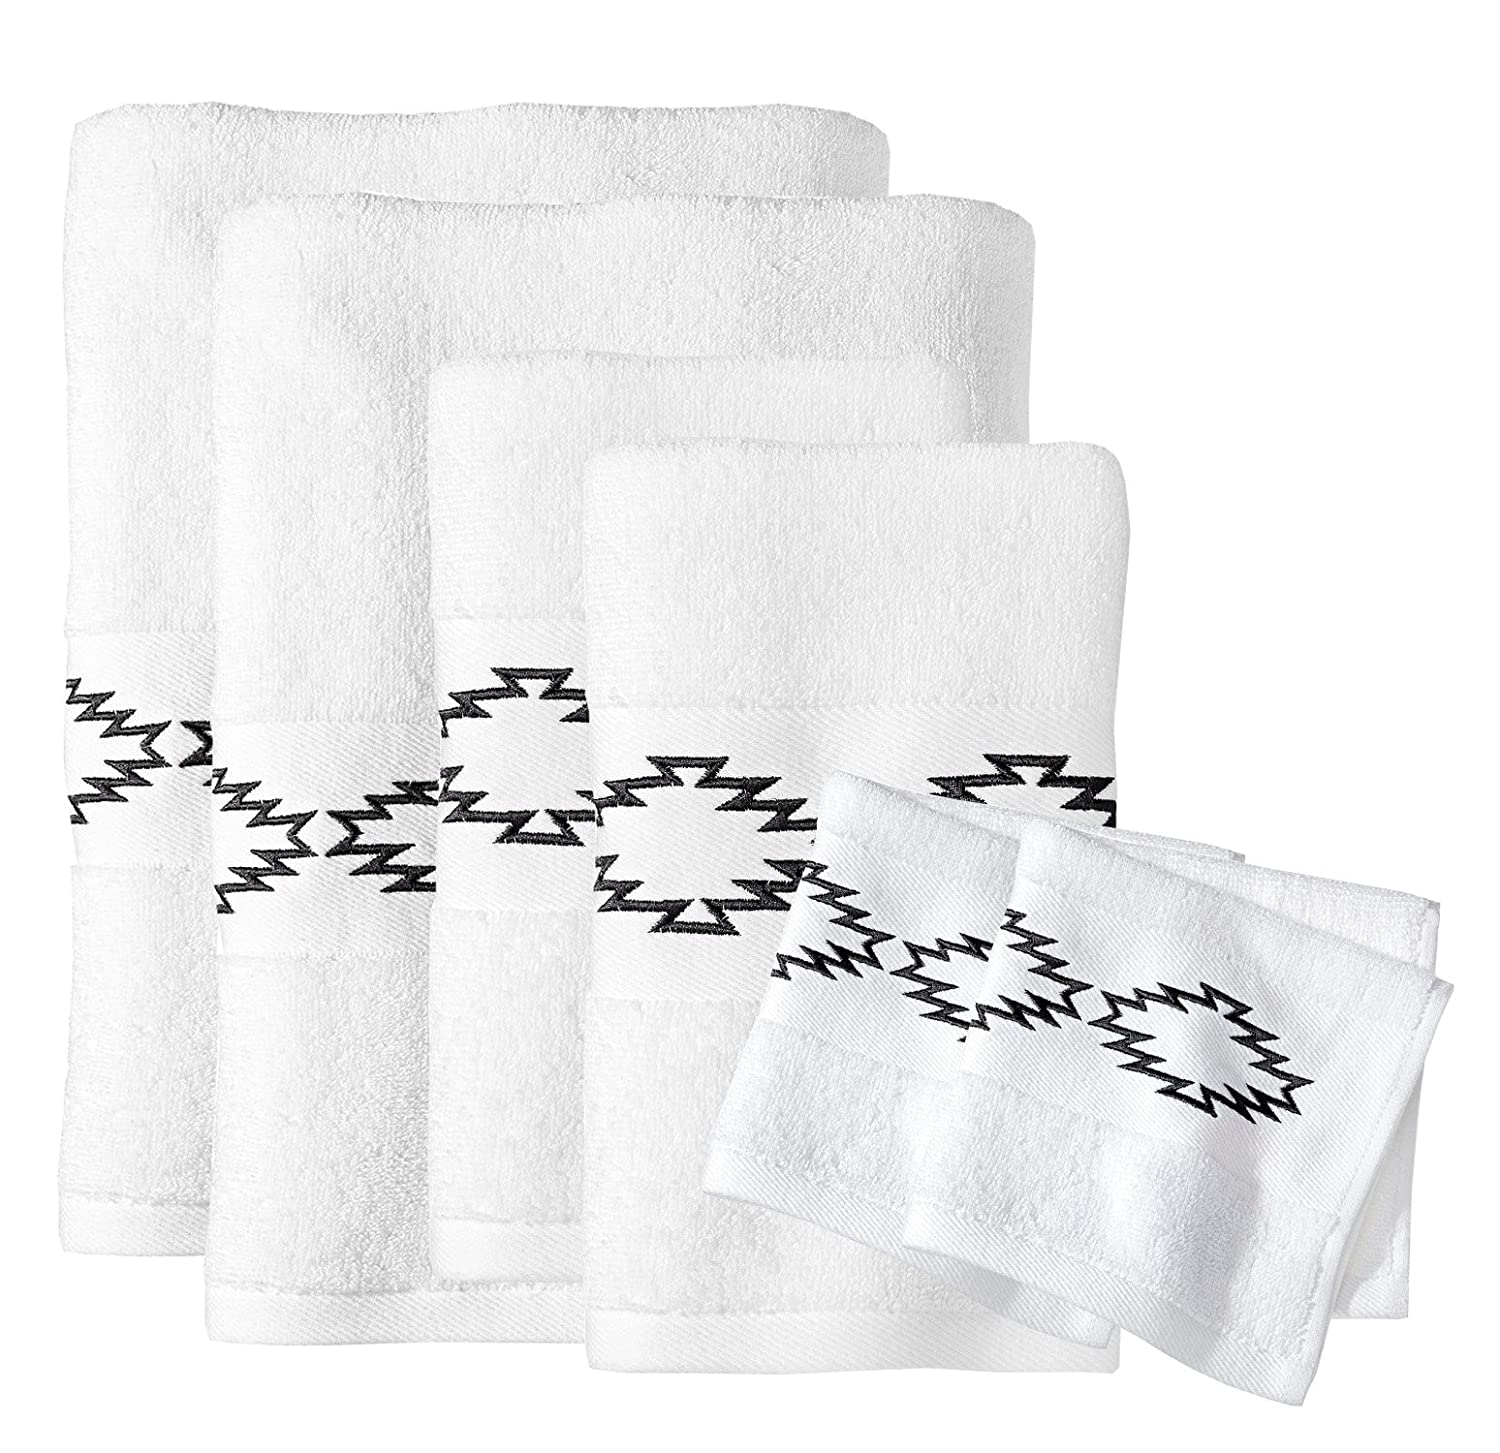 Sabrina Soto® Boutique Luxury 6 Piece Bath Towel, Hand Towel and Washcloth Set (Pink)